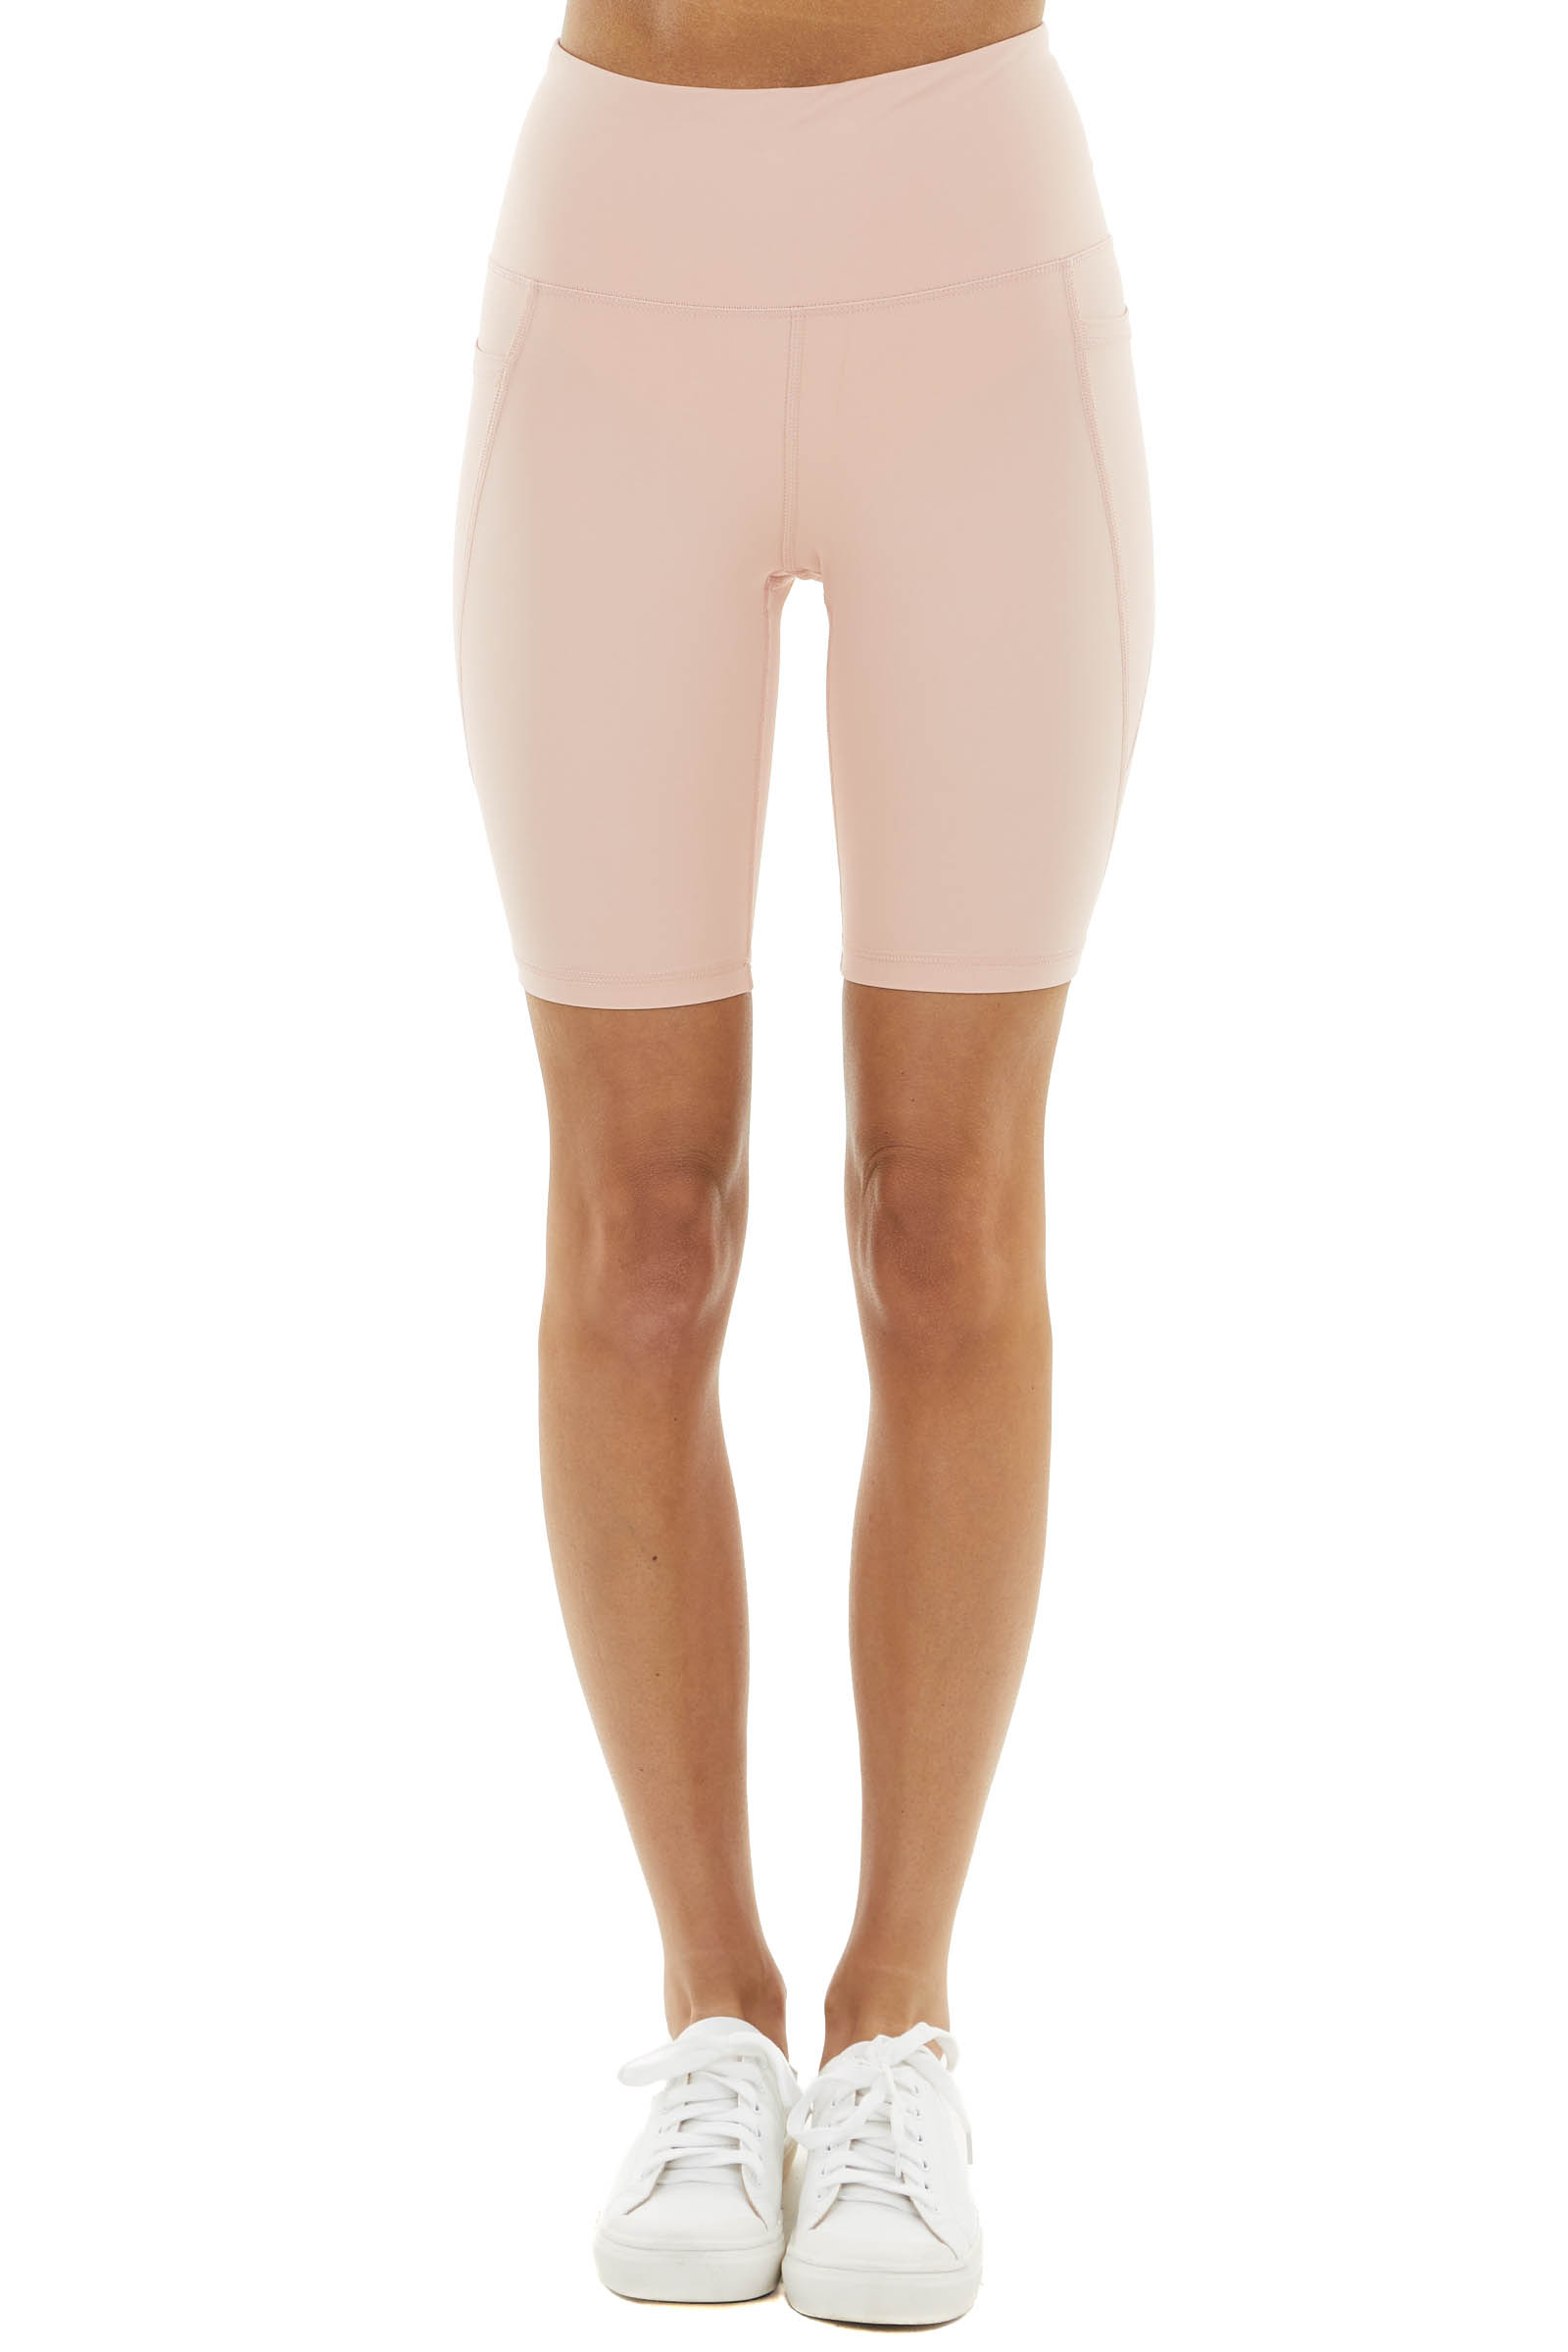 Peach Super Stretchy High Waisted Biker Shorts with Pockets